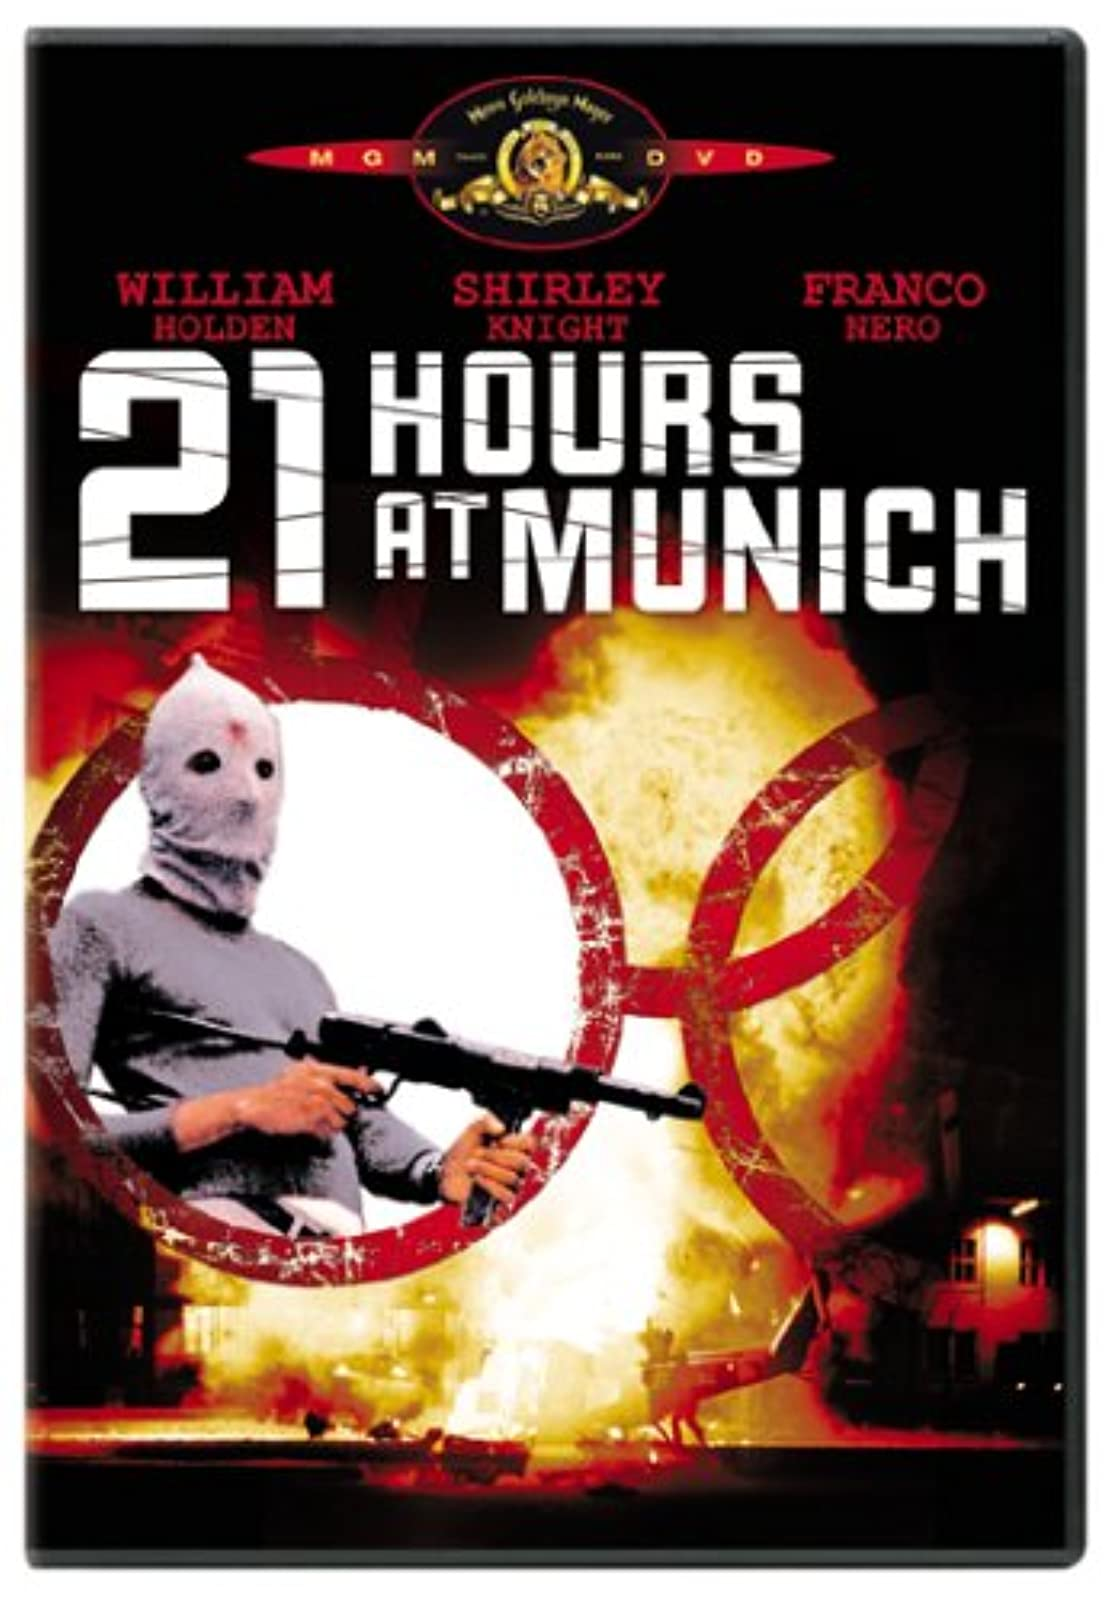 21 Hours At Munich On DVD With William Holden Mystery